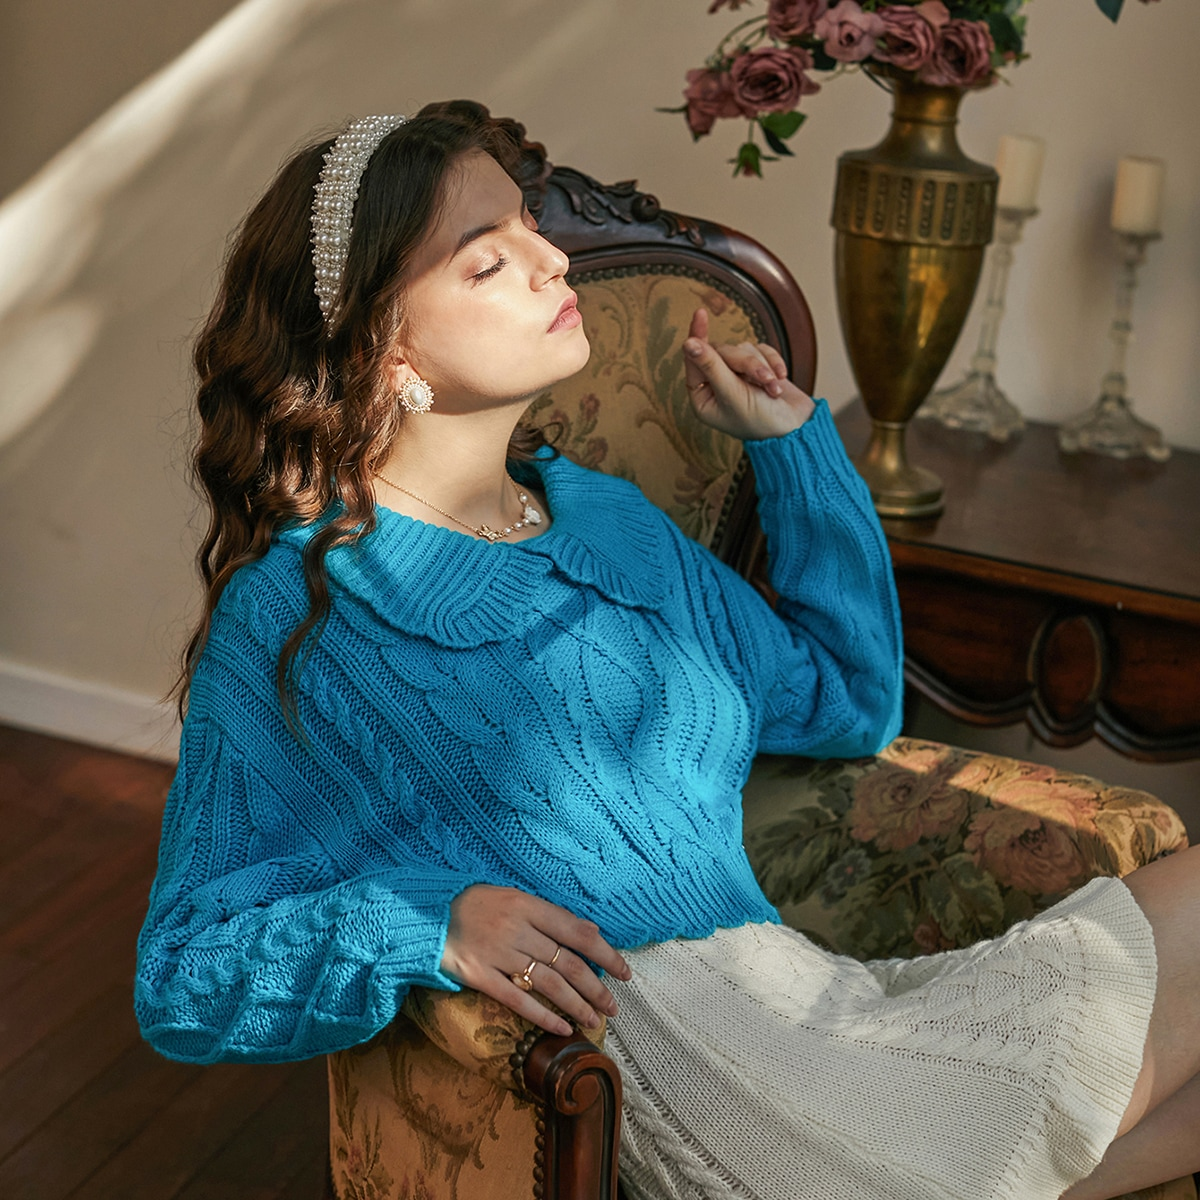 Peter Pan Collar Cable Knit Sweater, SHEIN  - buy with discount